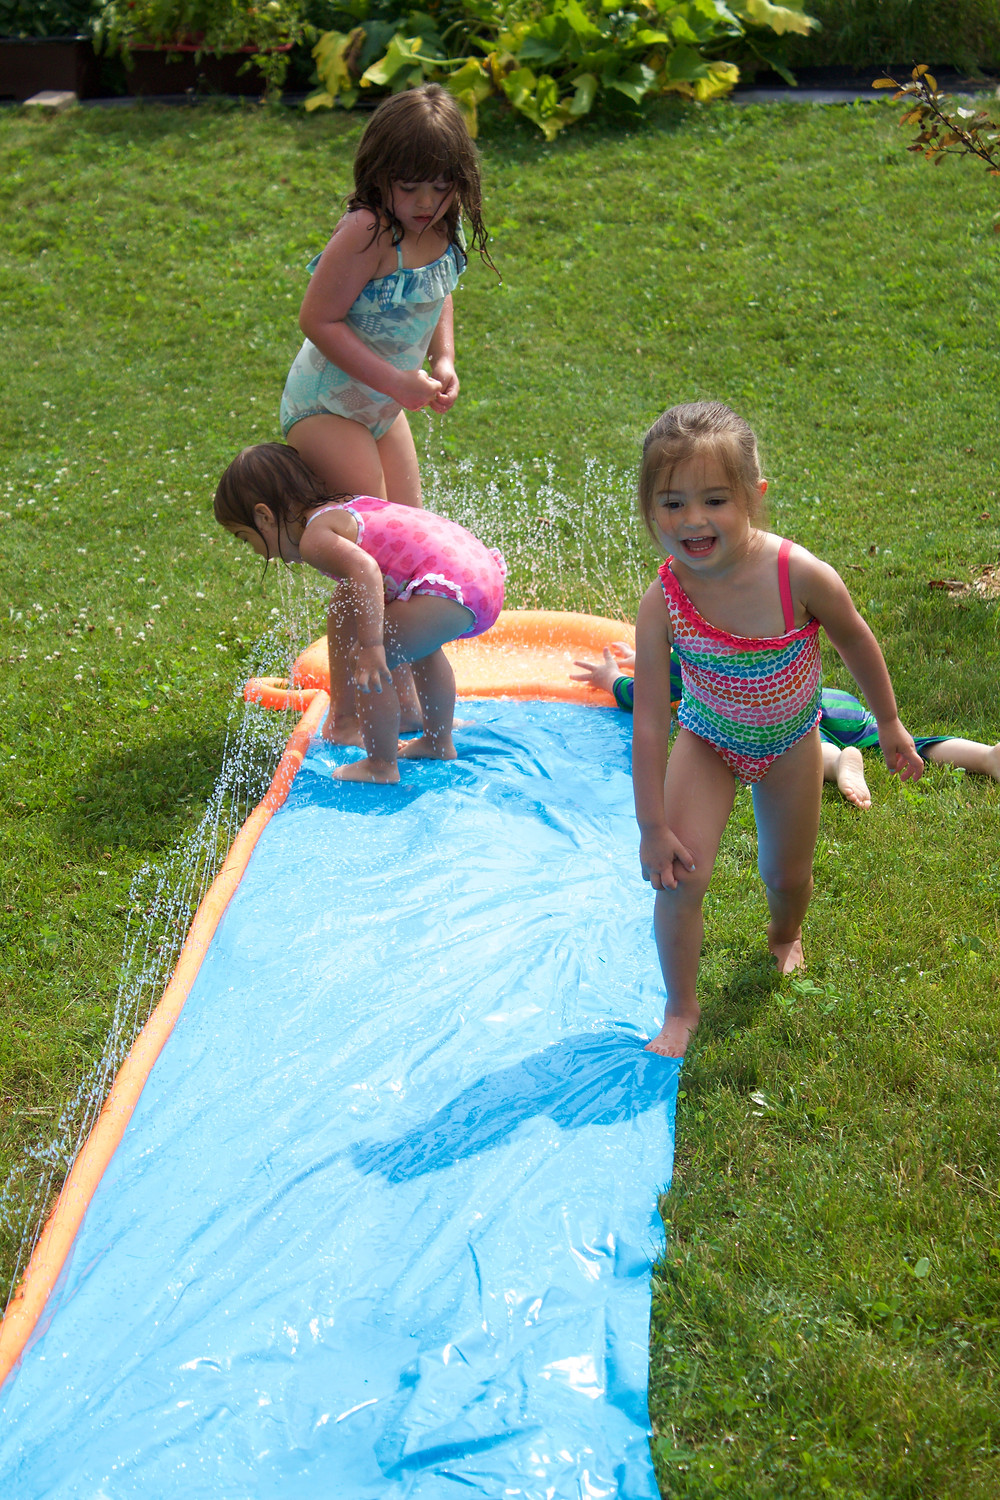 Blue Sky Daycare home daycare children enjoying water play outdoors